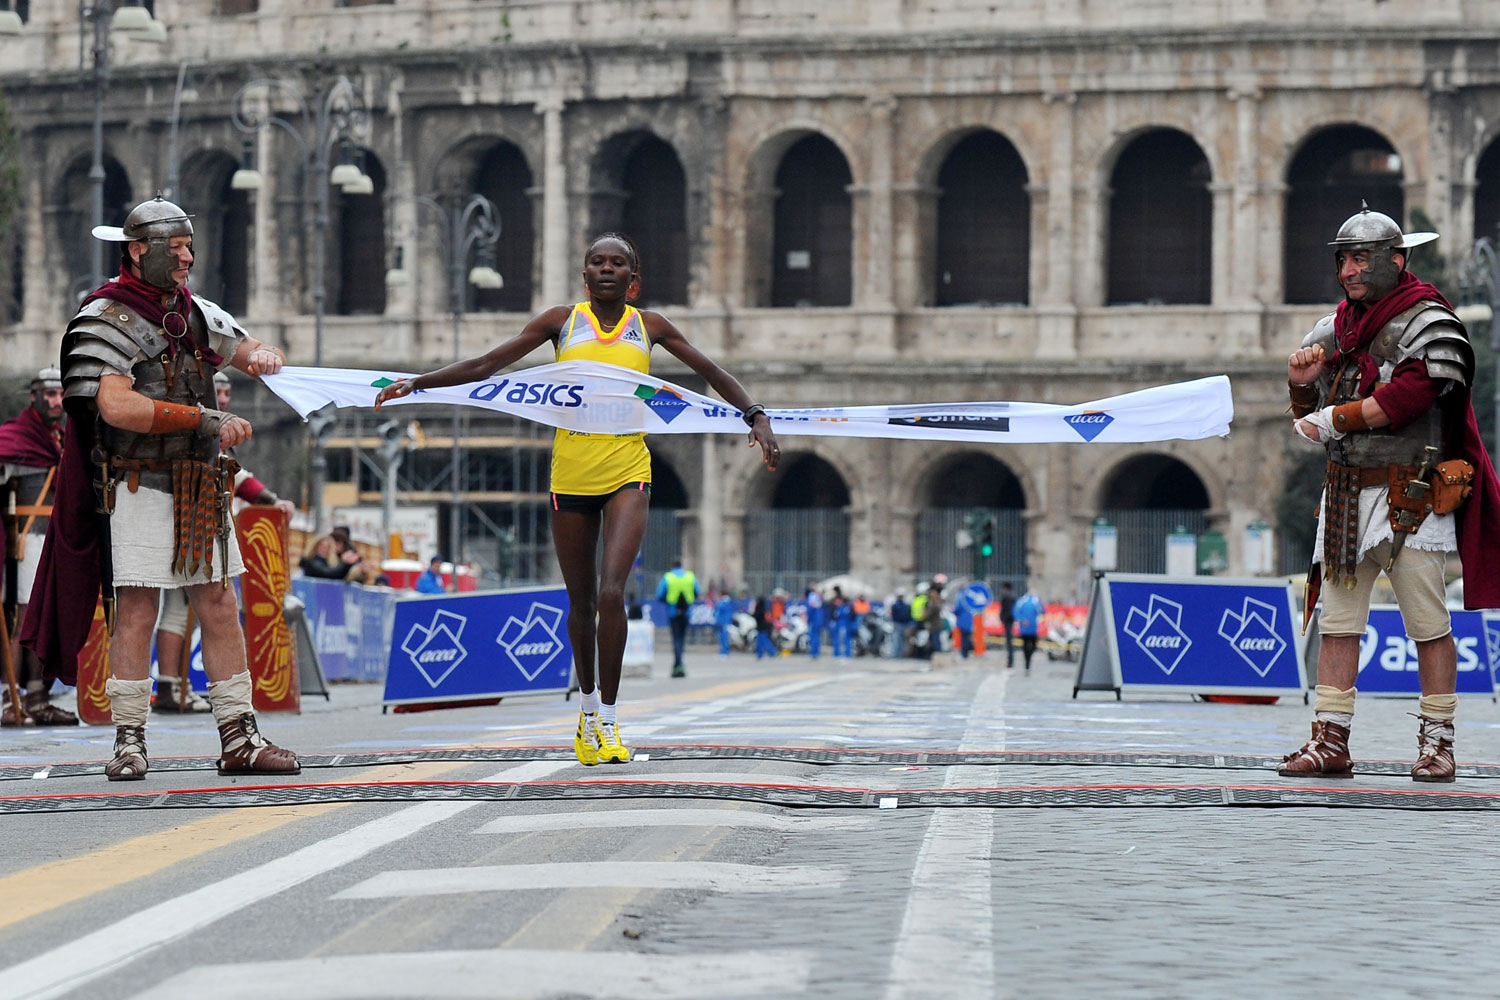 Helena Kiprop crosses the finish line to win the 19th Rome Marathon on March 17, 2013.